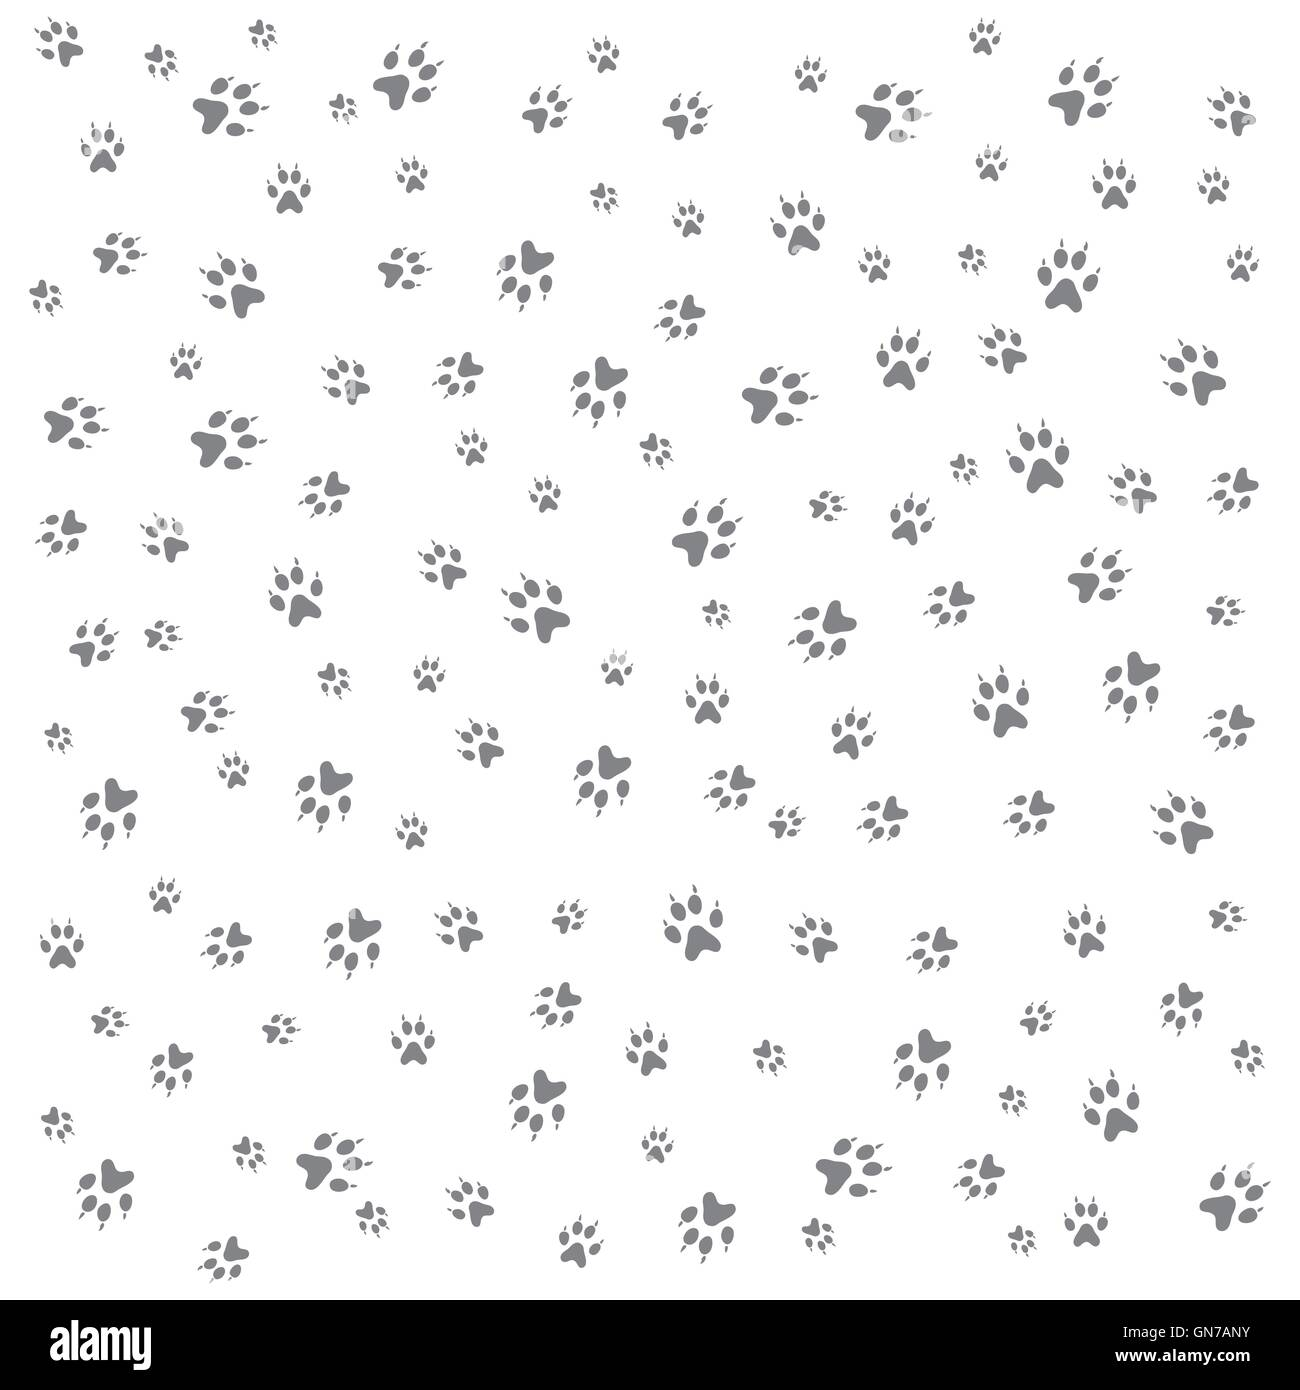 Nice picture of wild animal traces on a white background - Stock Image